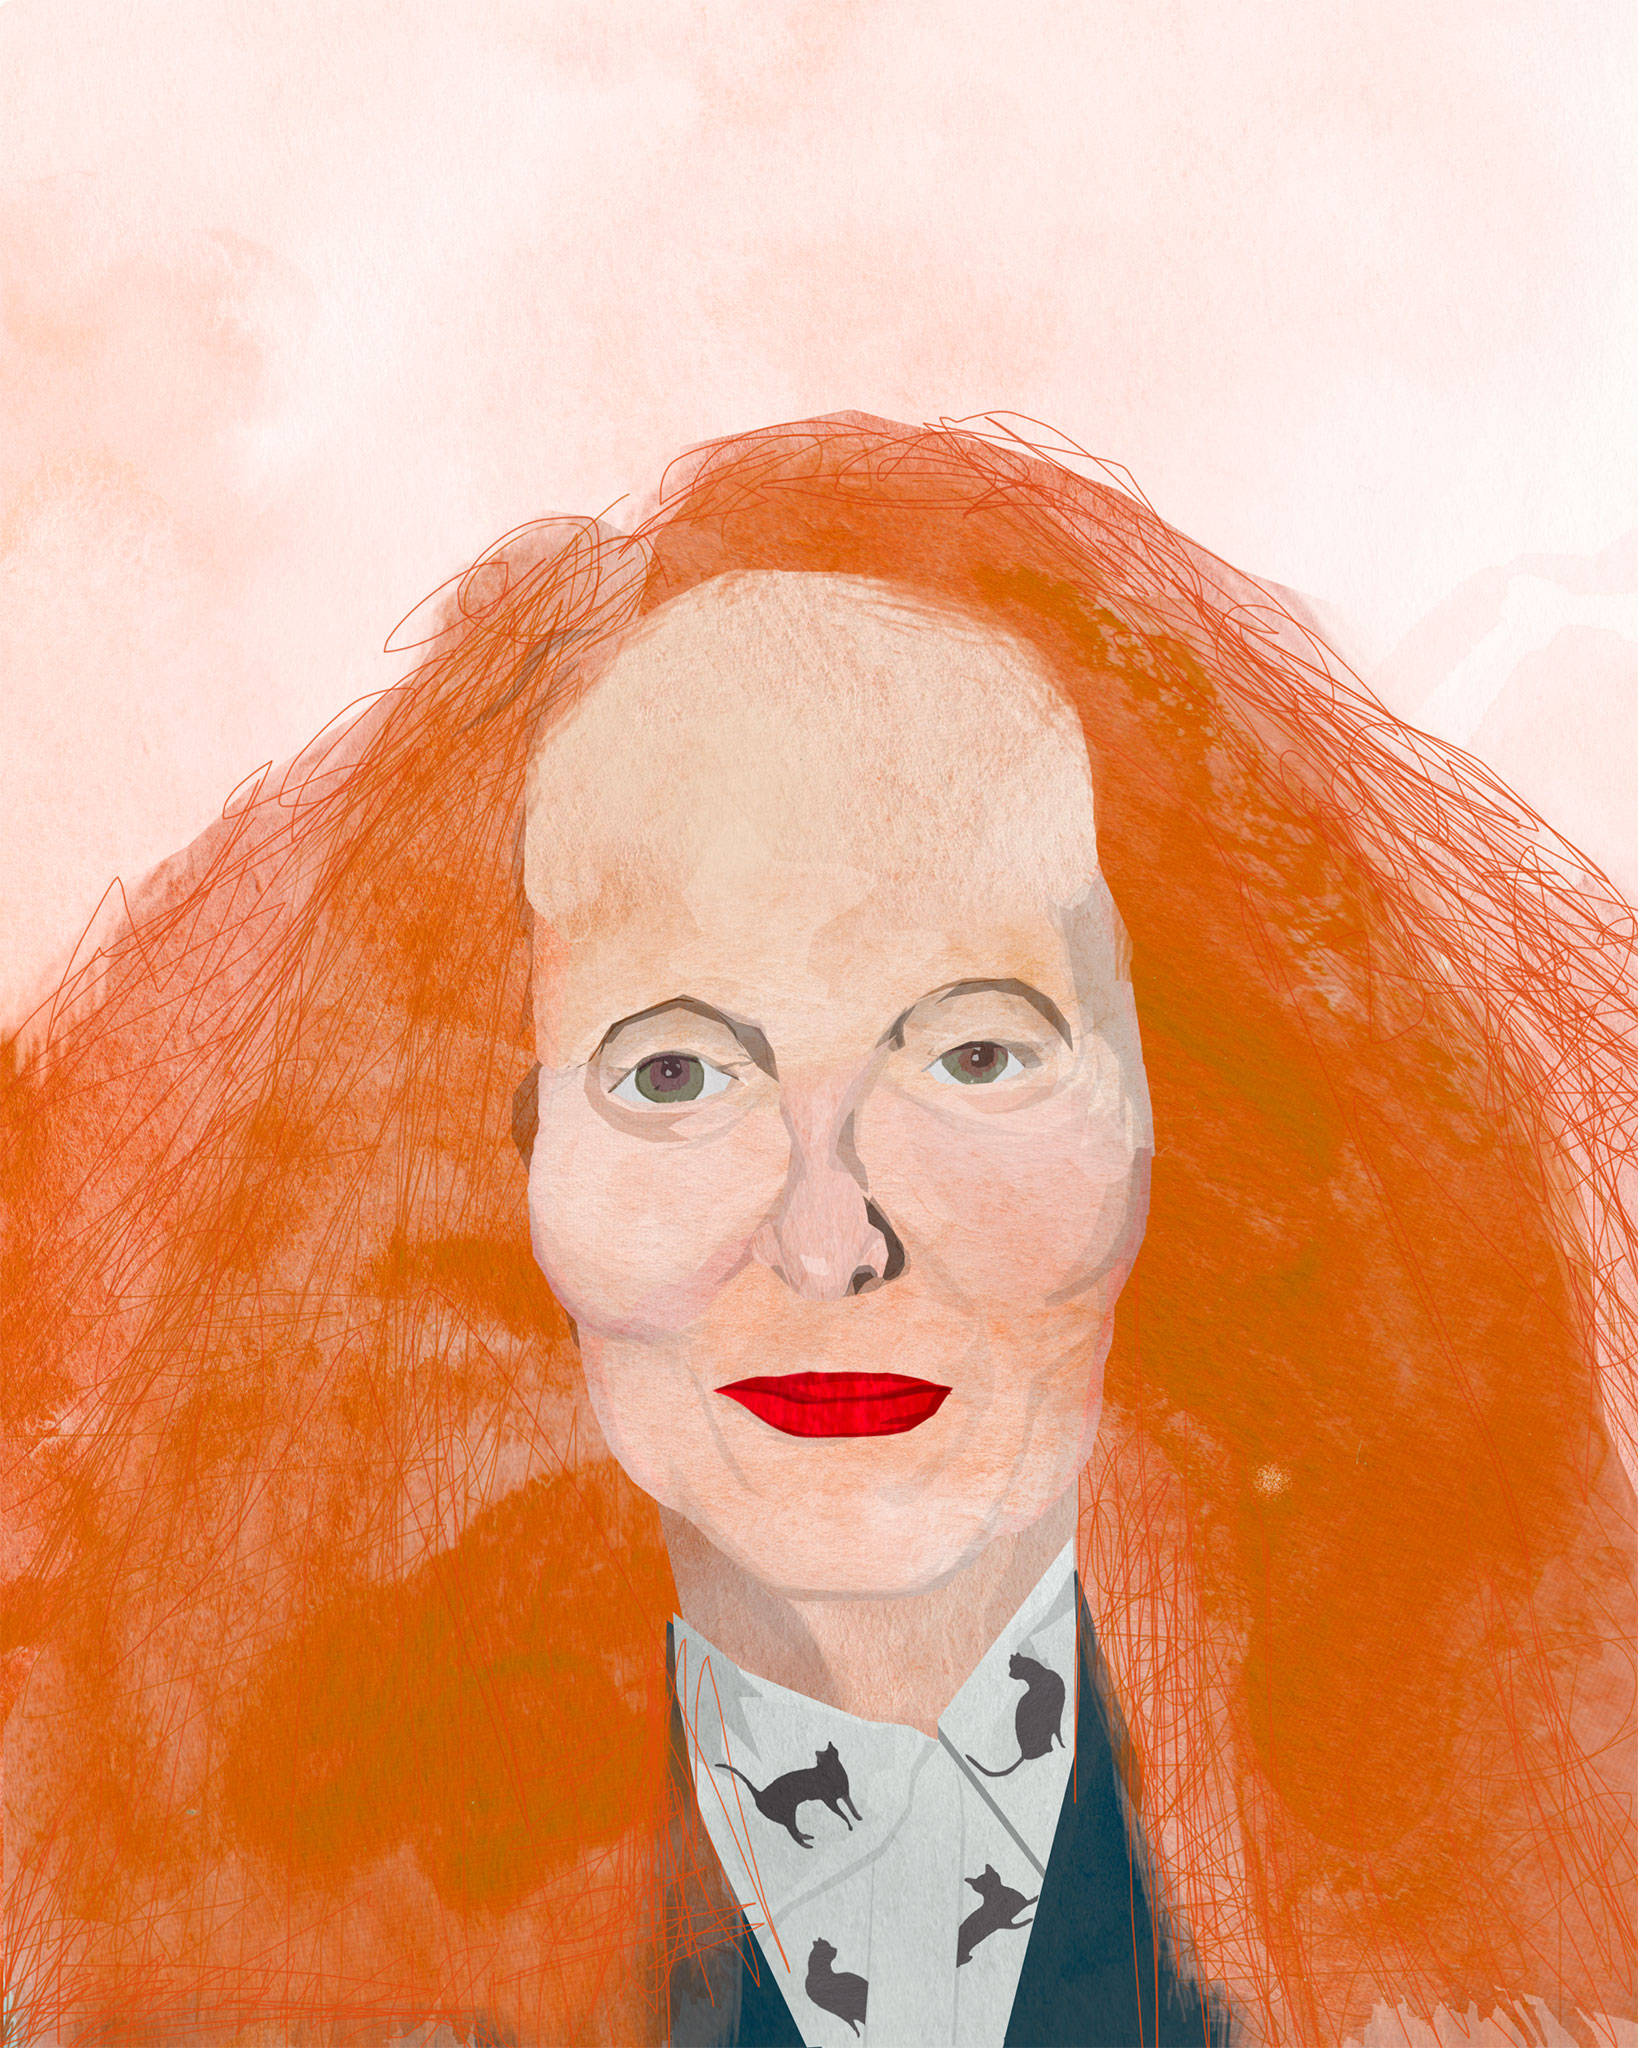 tram nguyen grace coddington illustration